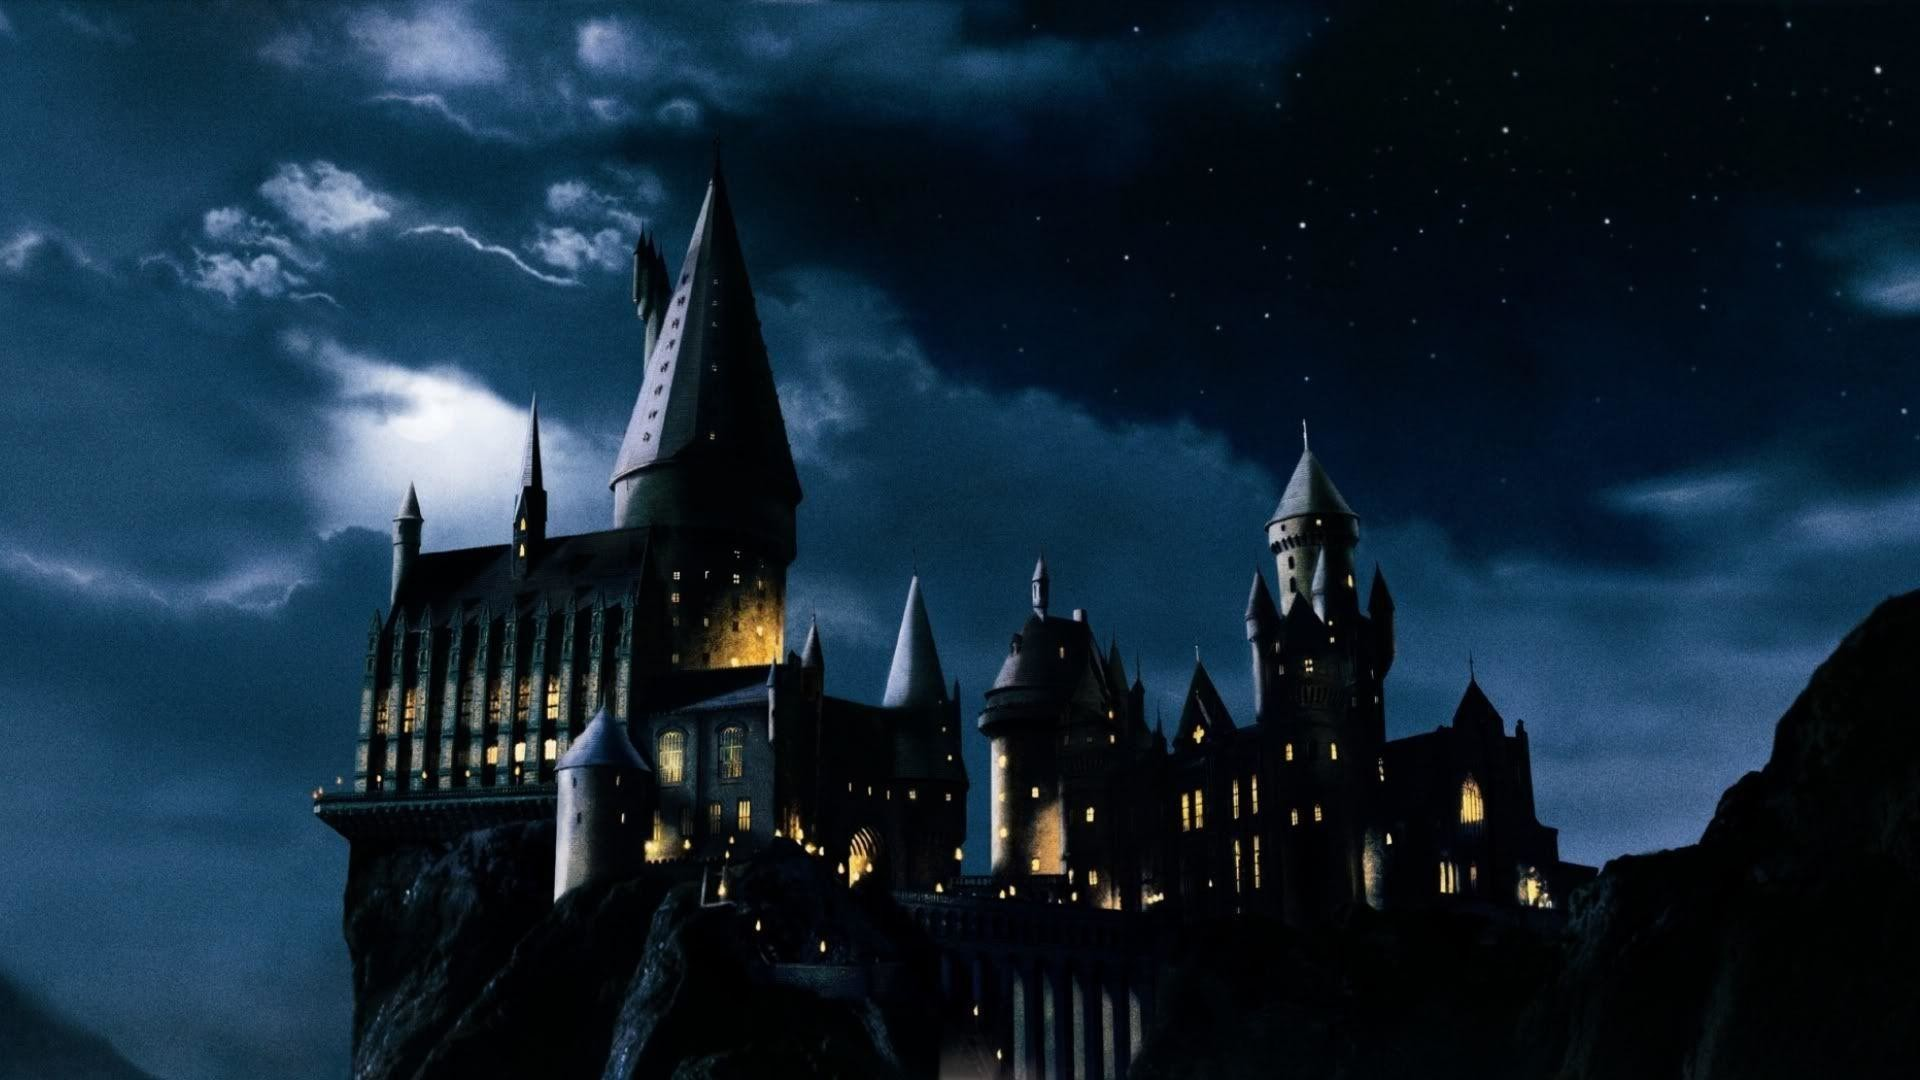 1920x1080 Harry Potter Art A Wallpapers Mostly Geeky Nerdy Stuff Nothing Too Artsy